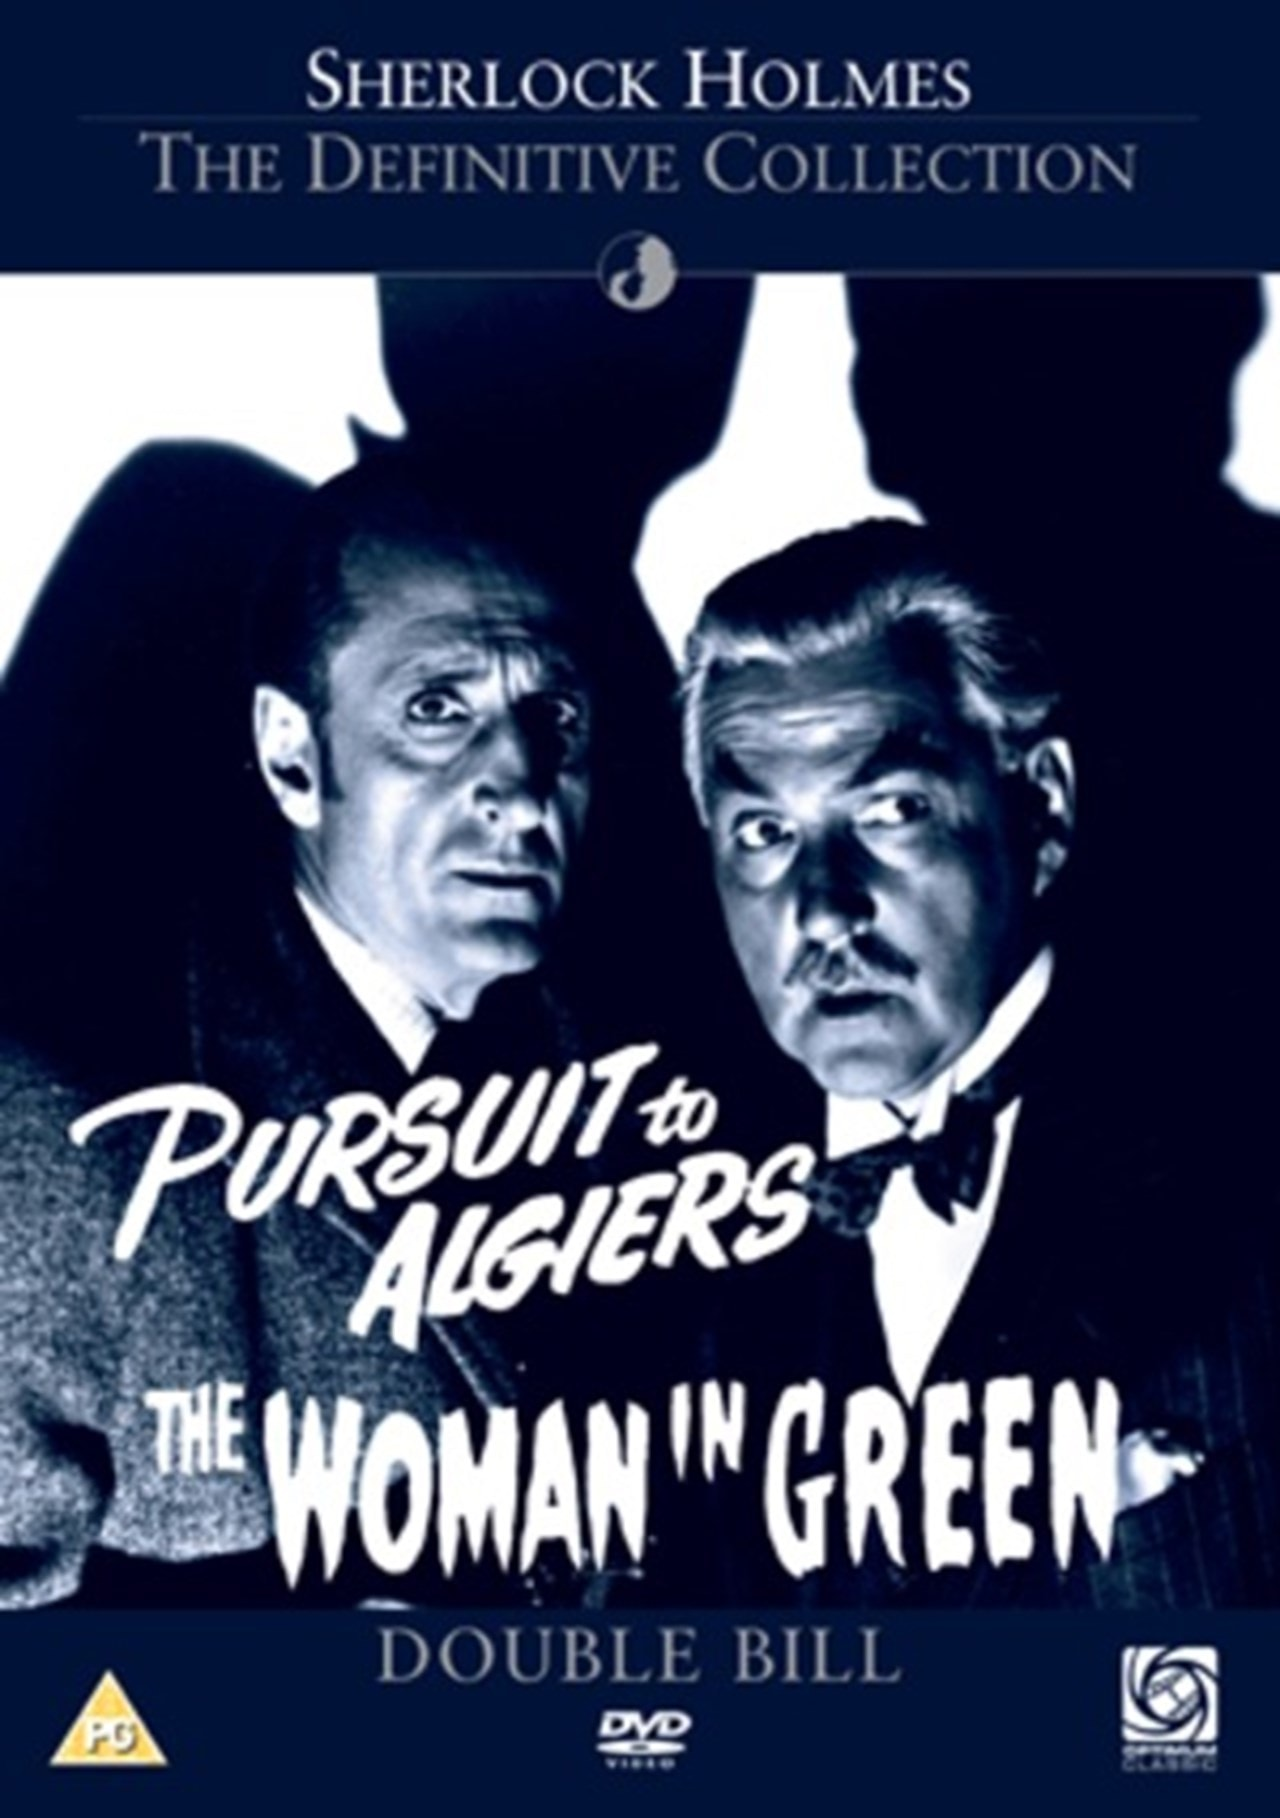 Sherlock Holmes: Pursuit to Algiers/The Woman in Green - 1